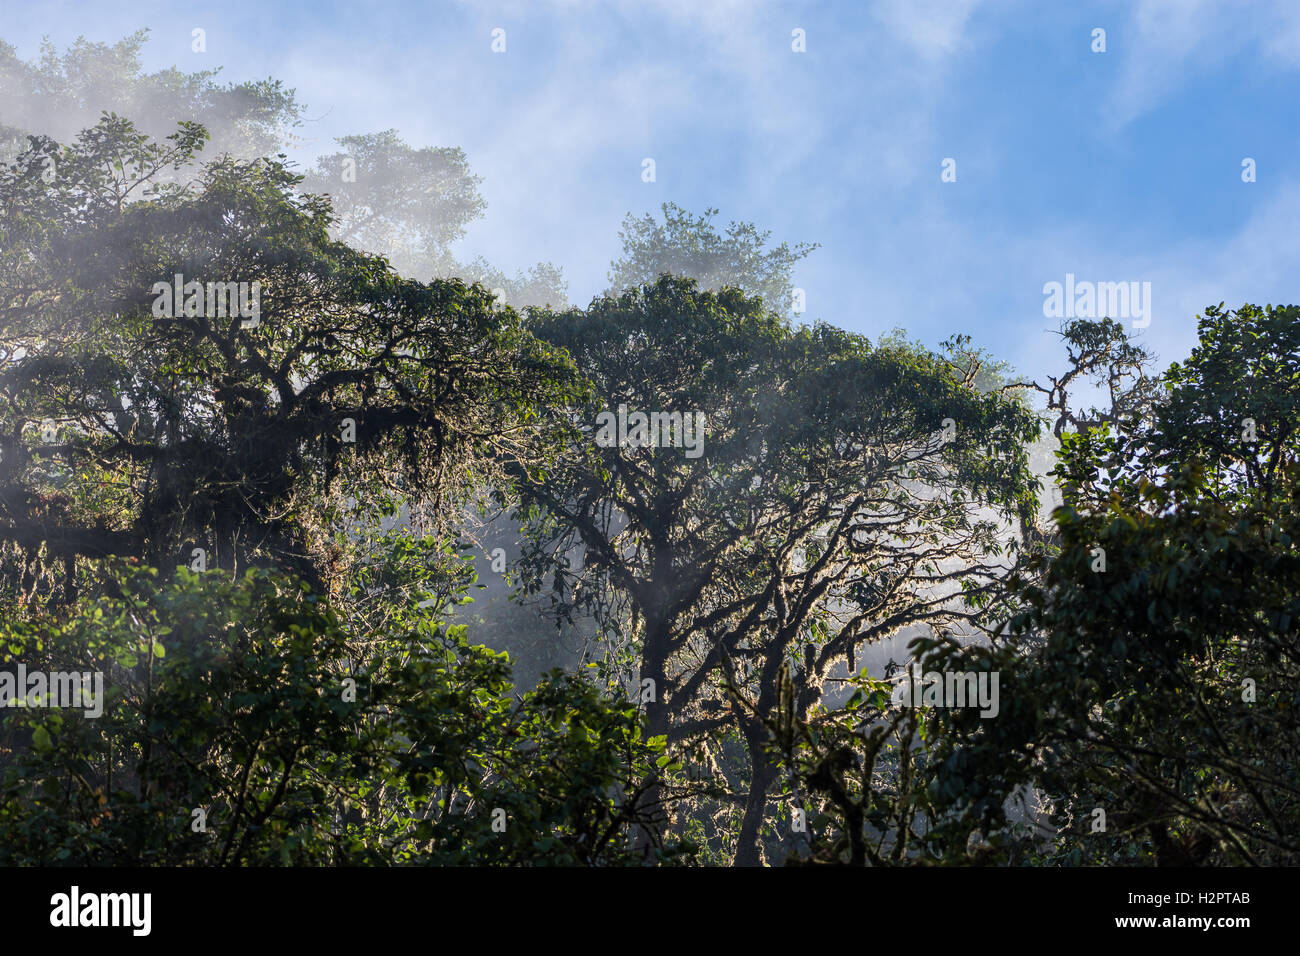 Water vapor rises over forest canopy in the Andes cloud forest. Ecuador, South America. - Stock Image